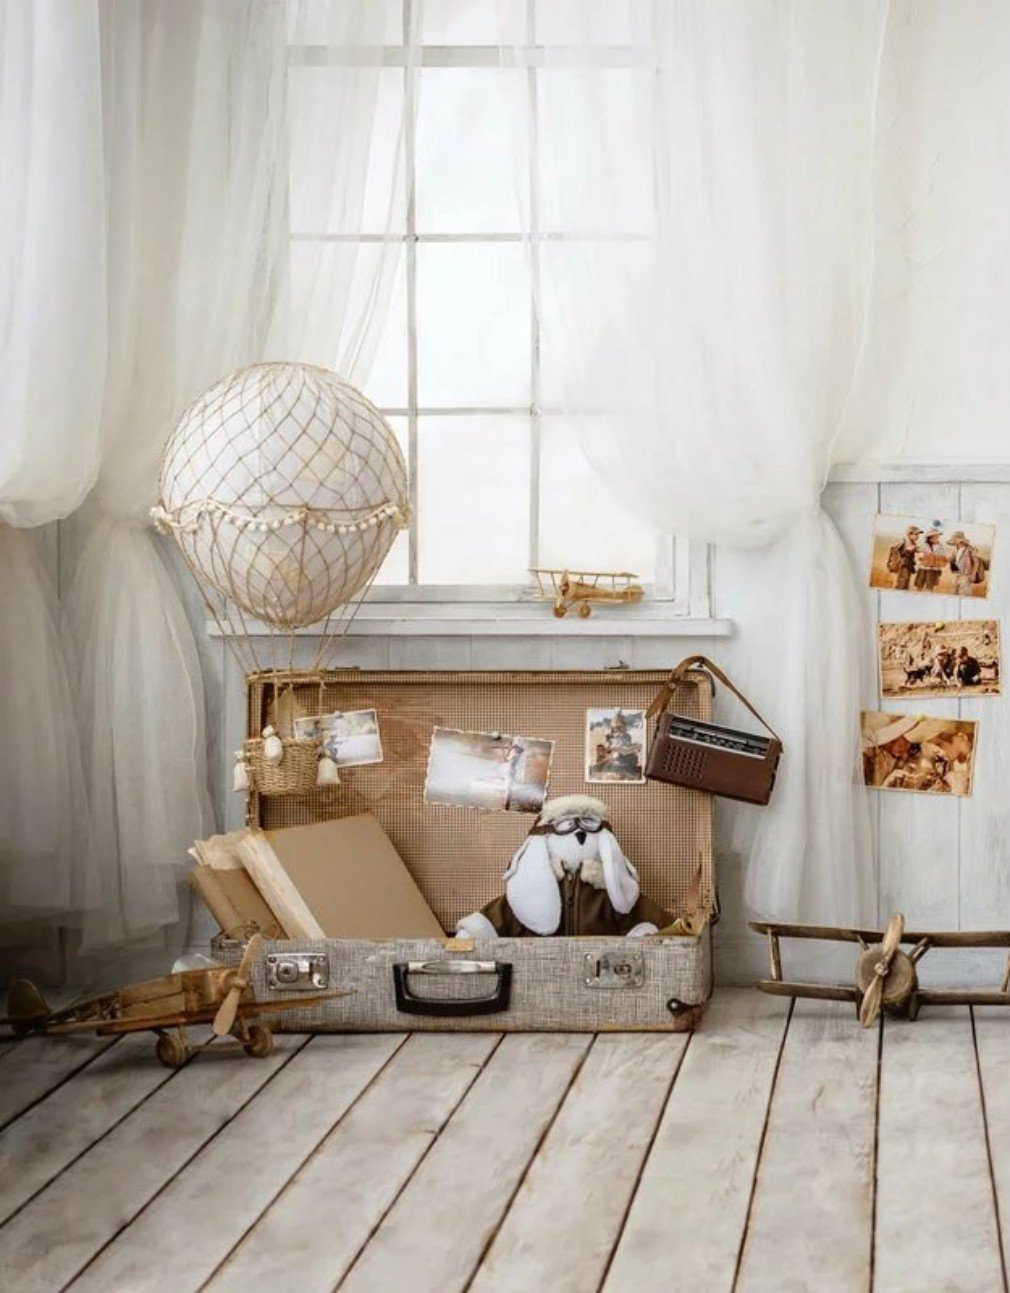 Amazon.com : Indoor Room Kids Photography Background Vintage Suitcase with Toy White Window Curtain Wood Wall Children Booth Background for Photo Studio 5×7 ...